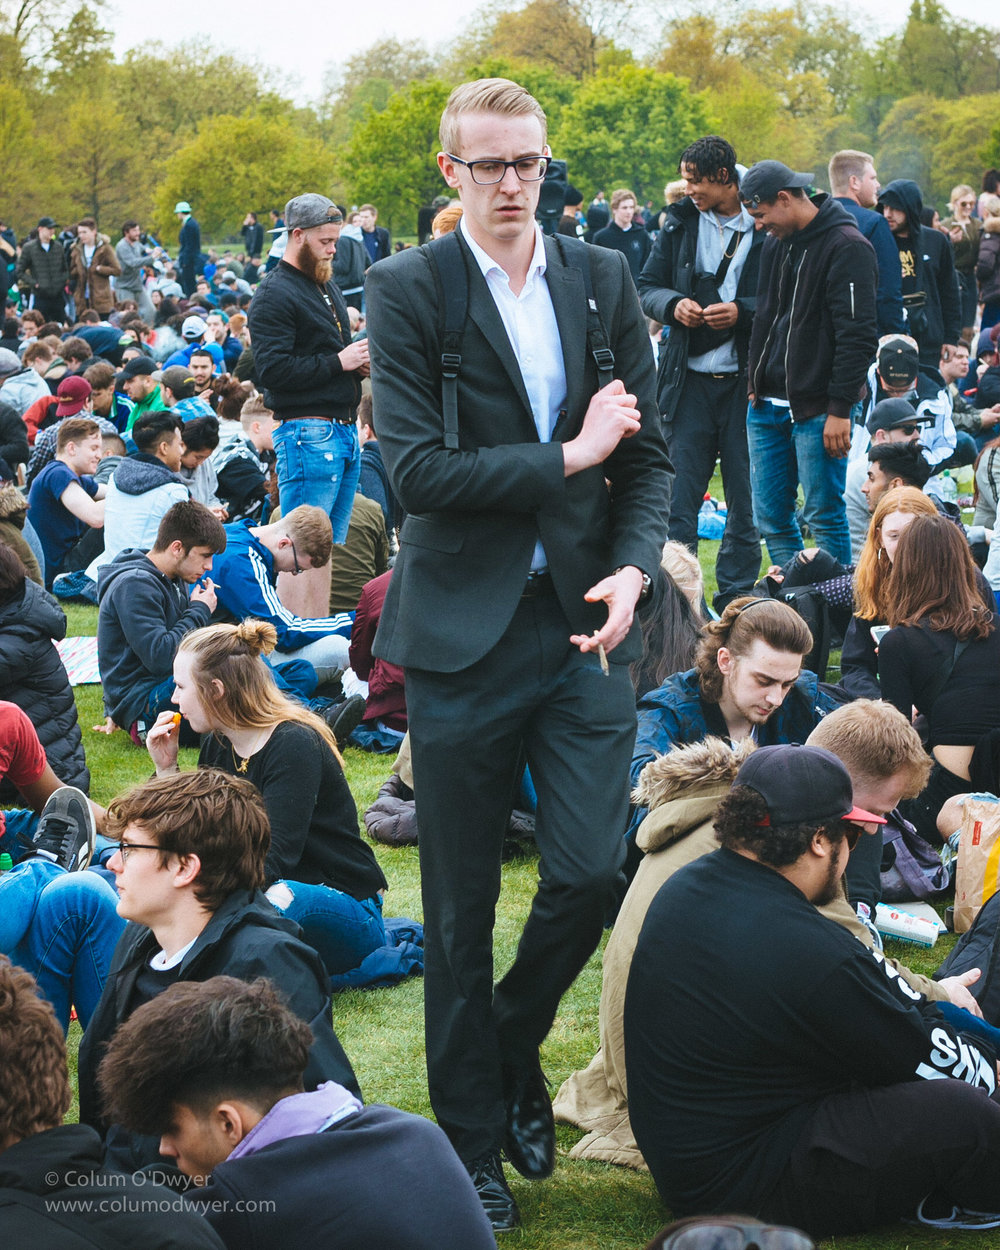 420 Hyde Park London - Apr 2017 - IMG_1577.jpg